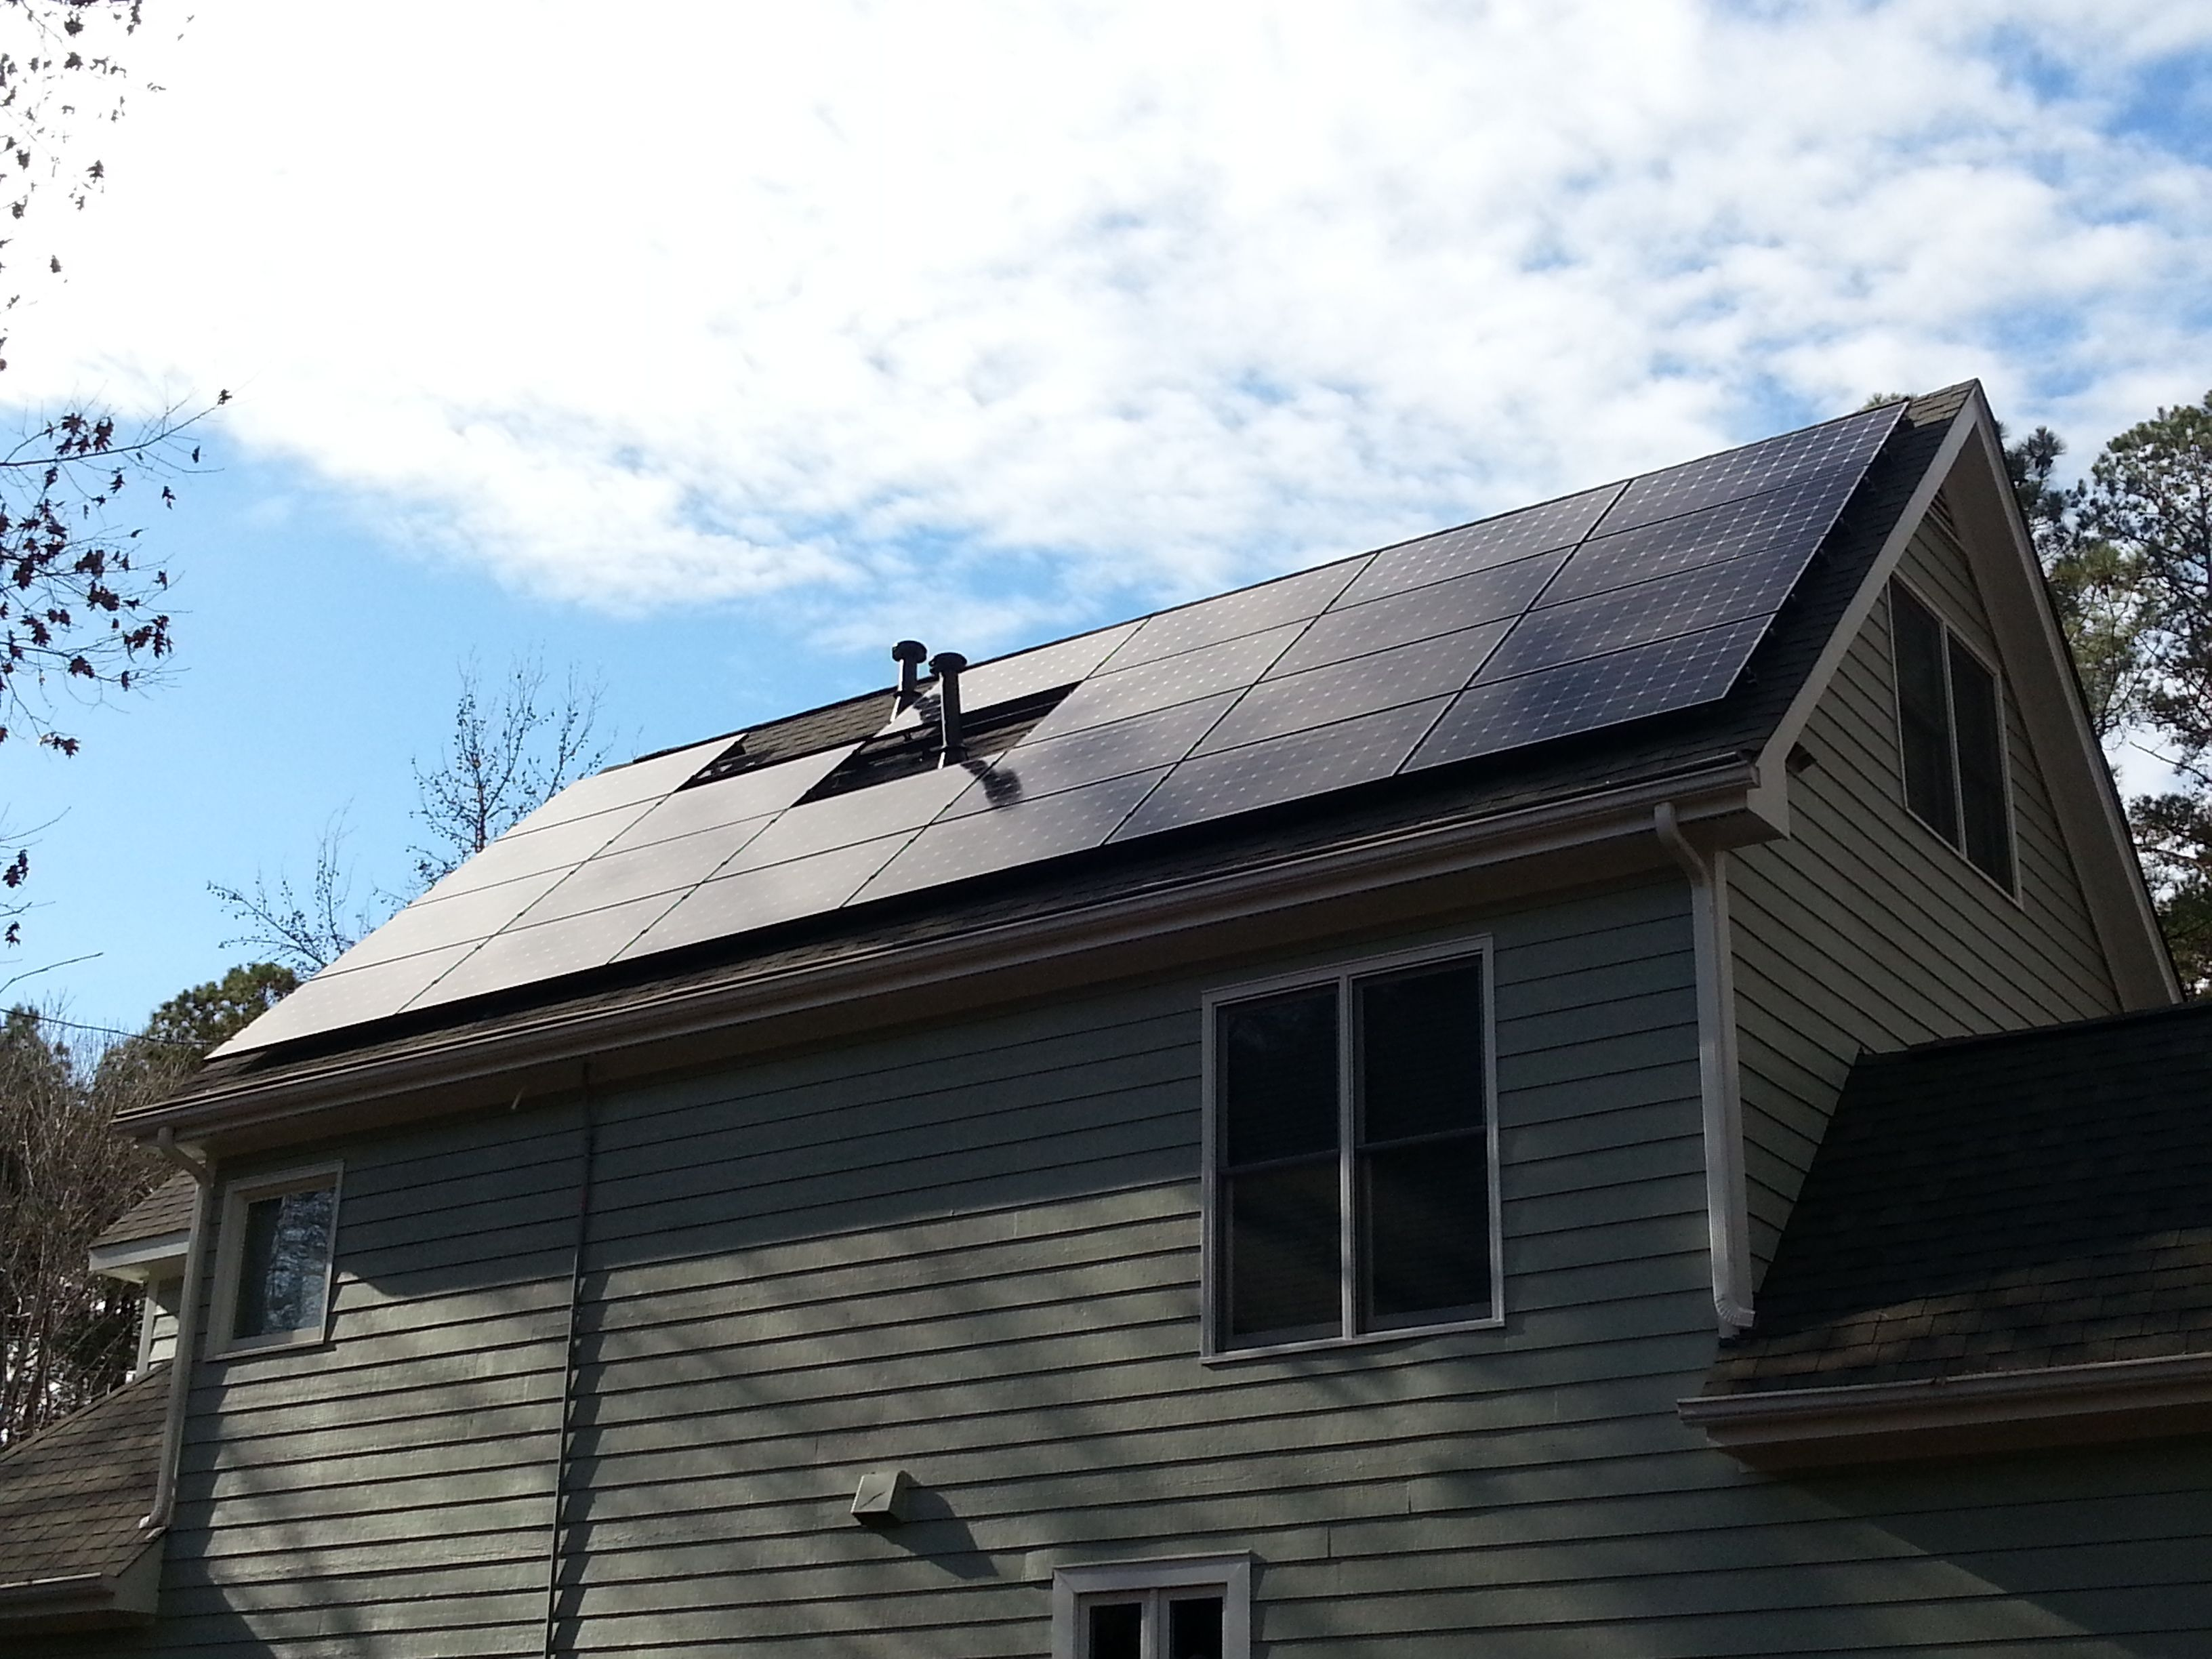 16 320 Watt Solar Panels Go Up On A Home In Raleigh Nc Making A 5 12 Solar Array Solar Outdoor Decor Outdoor